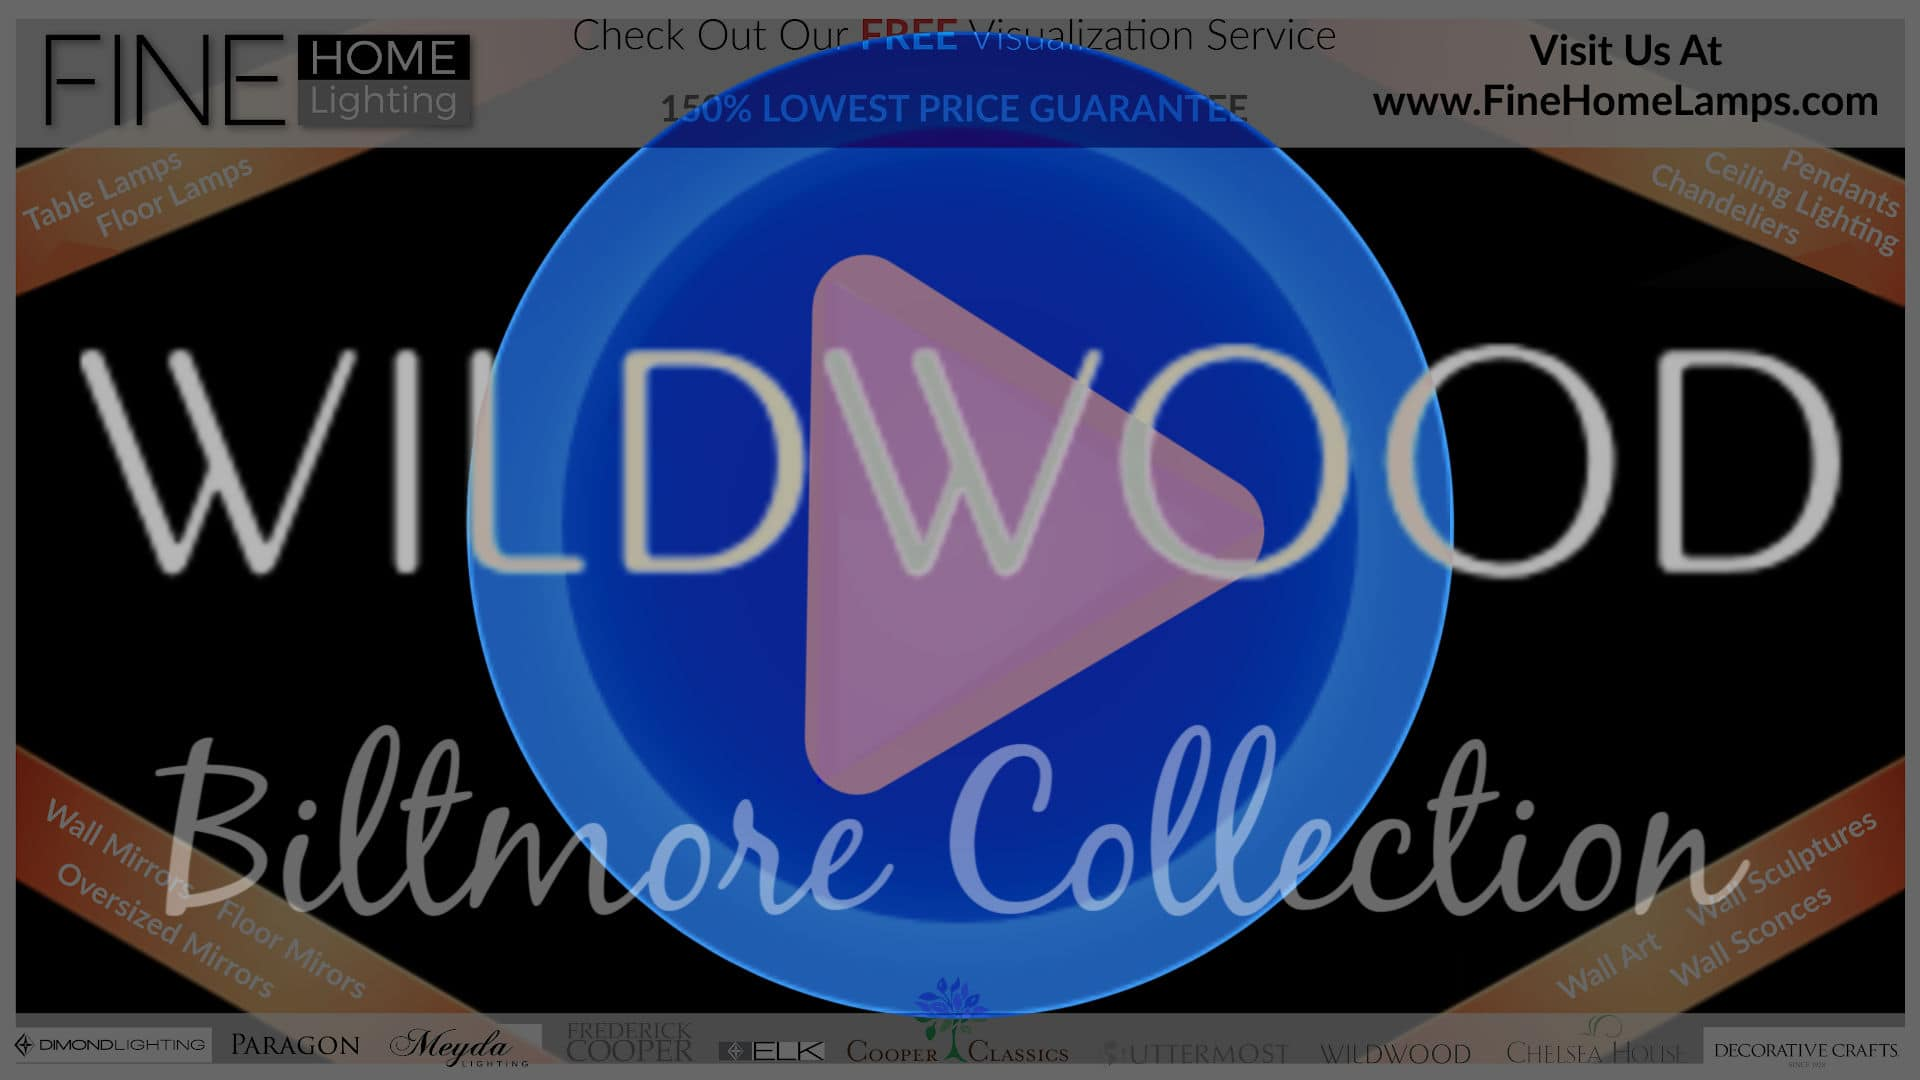 Wildwood-Biltmore-Collection-Thanks-for-watching-this-video-Get-an-additional-15-percent-off-your-next-purchase-Use-Coupon-Code-VIDEO-1